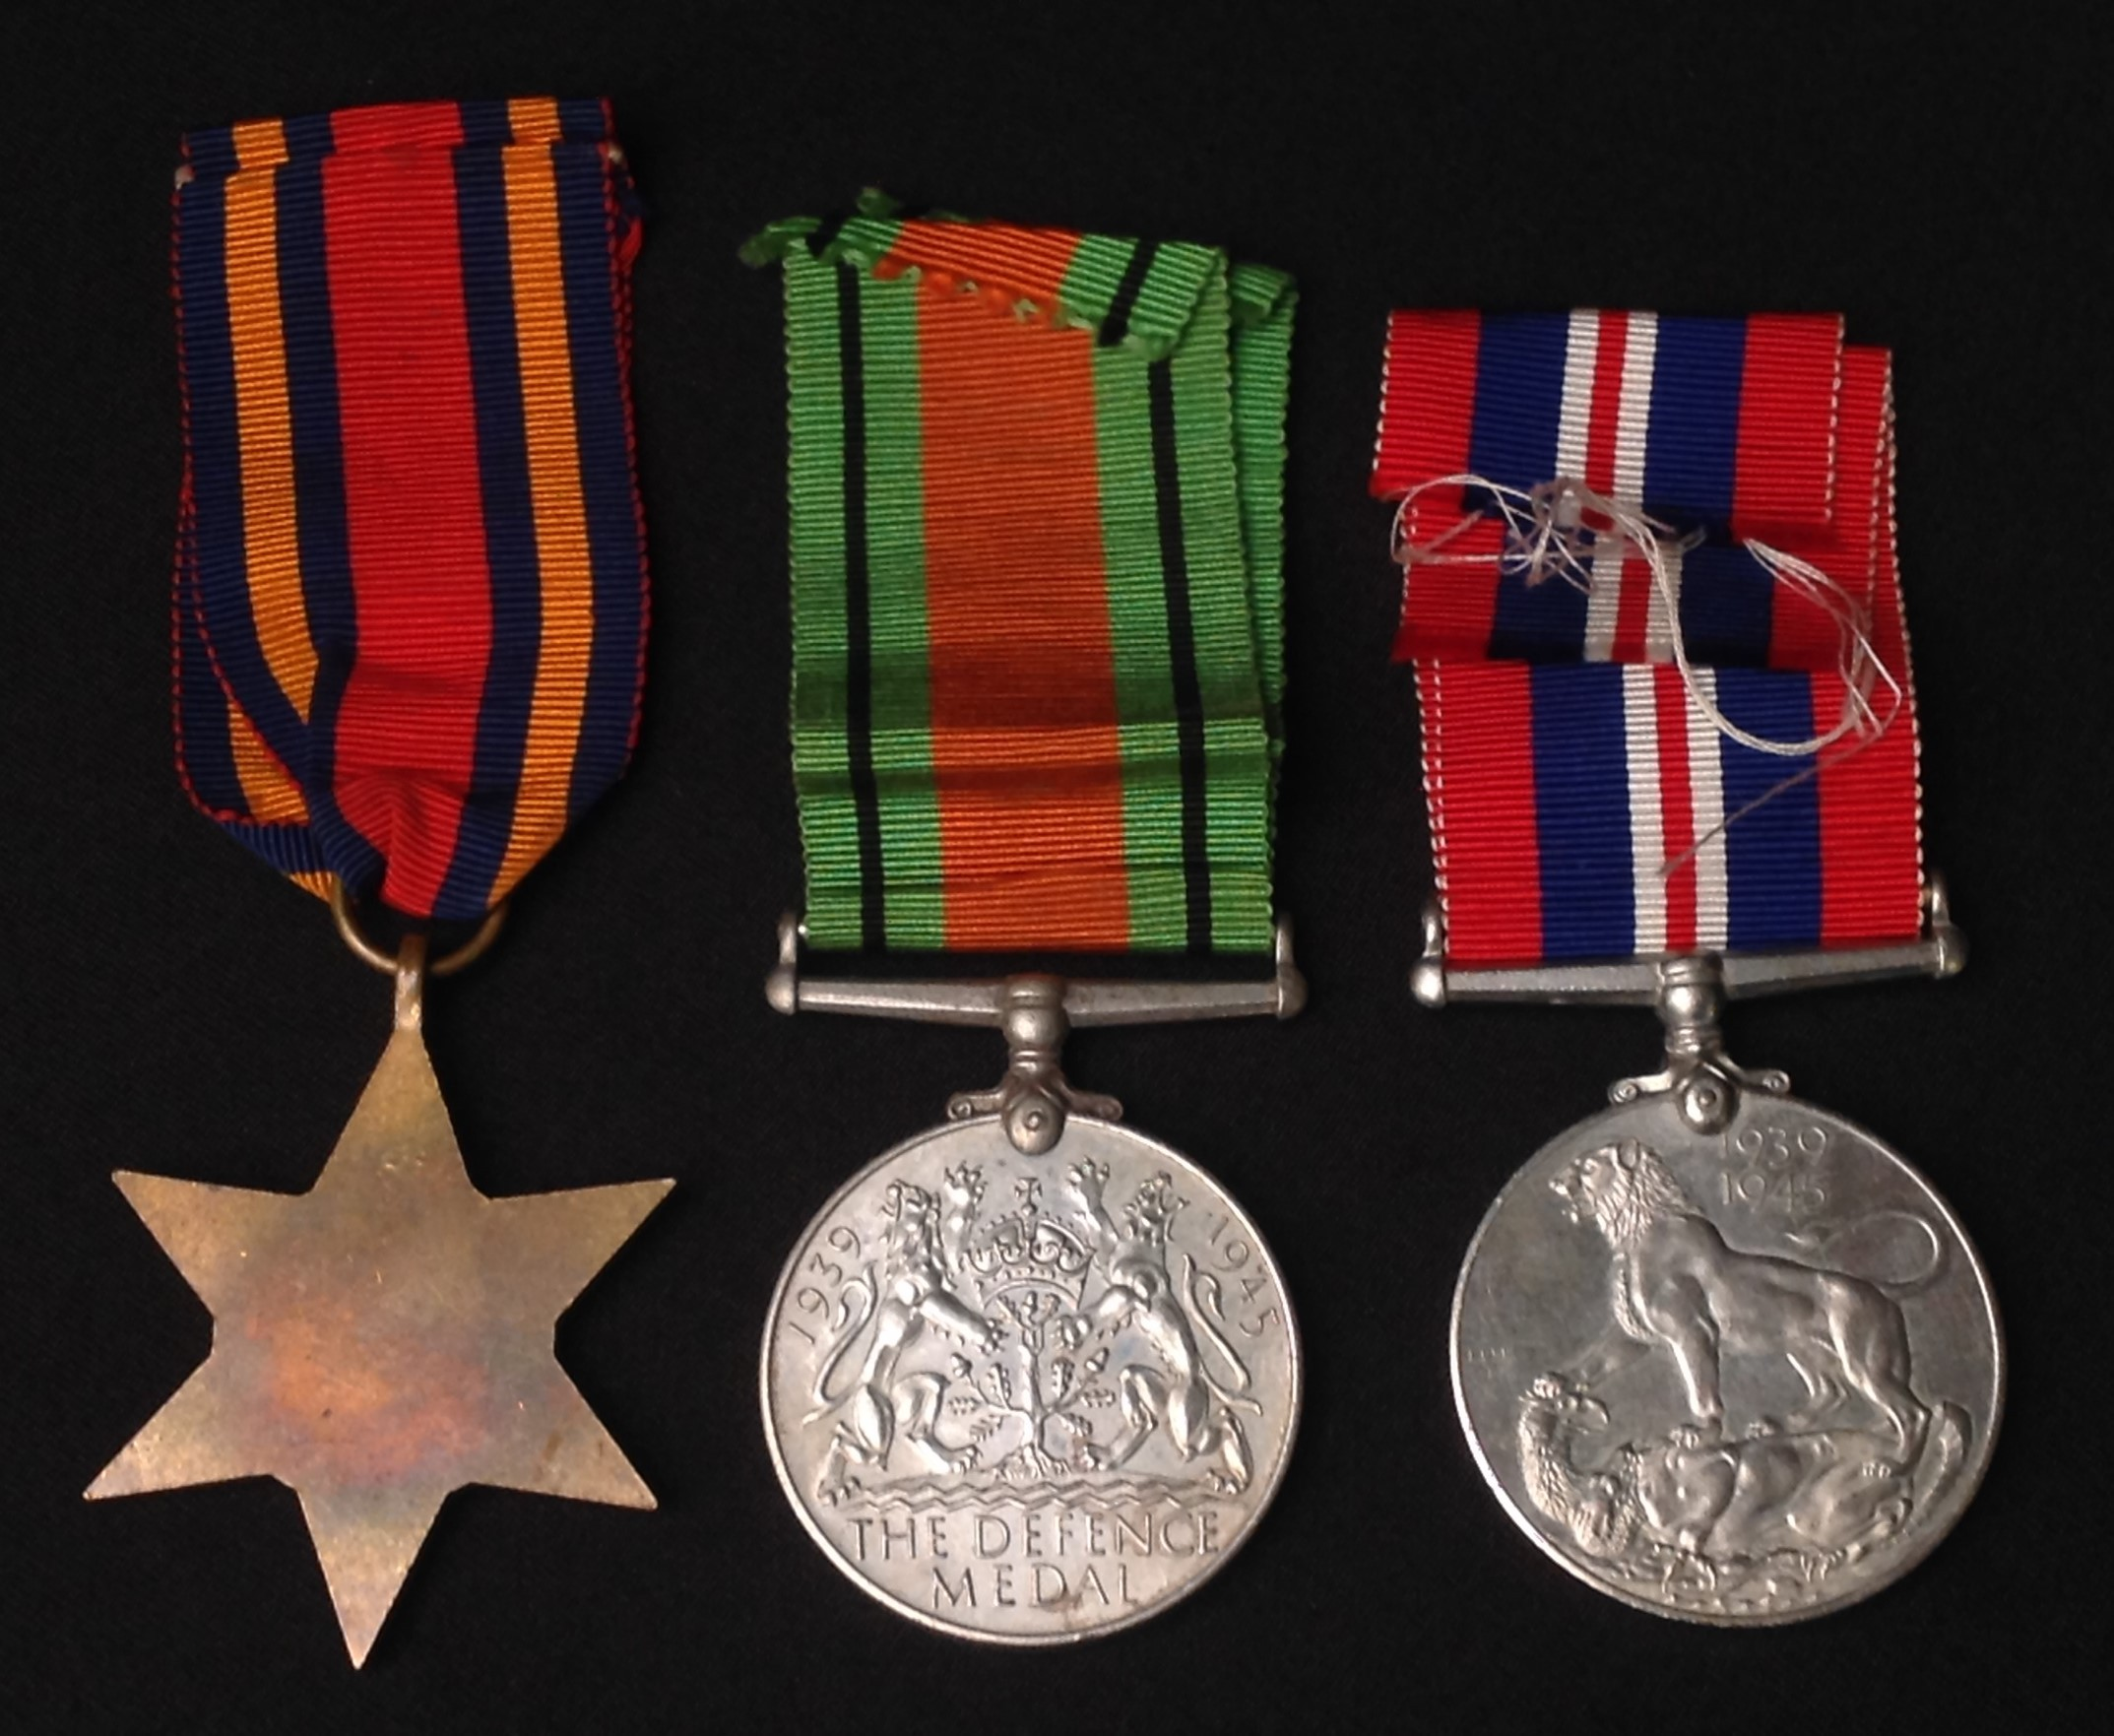 WW2 British Burma Star, Defence Medal and War Medal. All complete with original ribbons. - Image 3 of 3